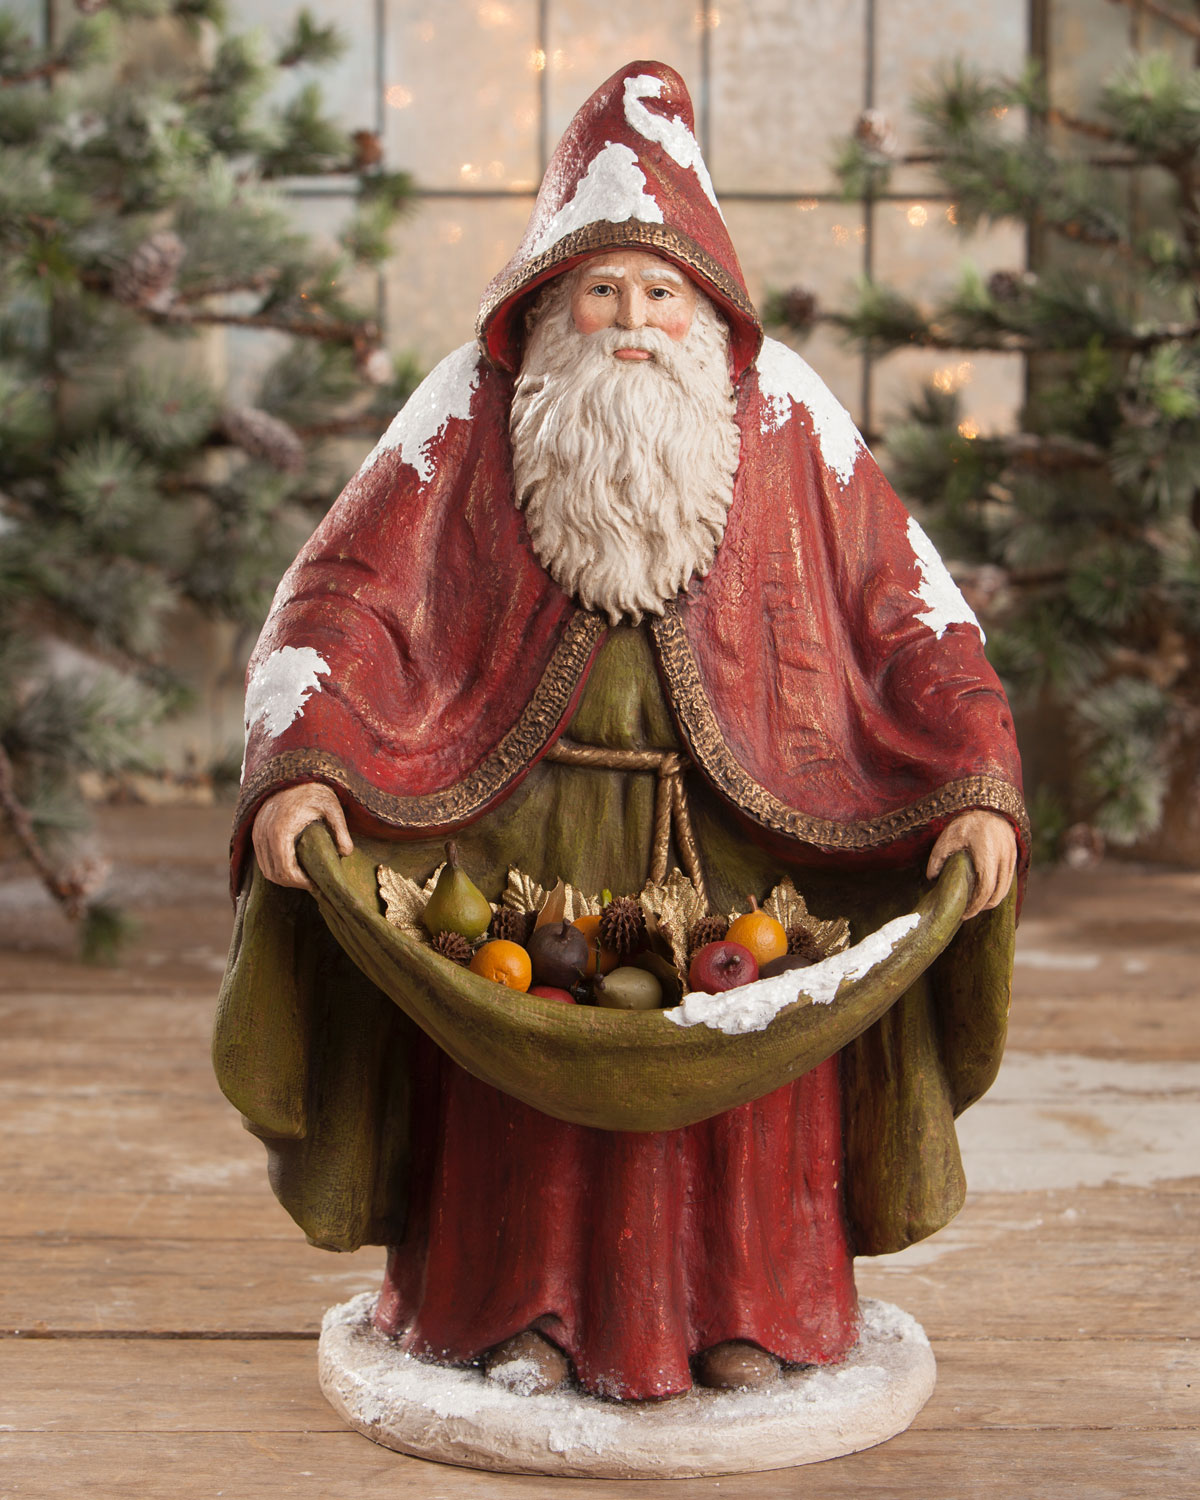 Wedding Gift Stores Nyc: Bethany Lowe Traditional Old World Santa Statue